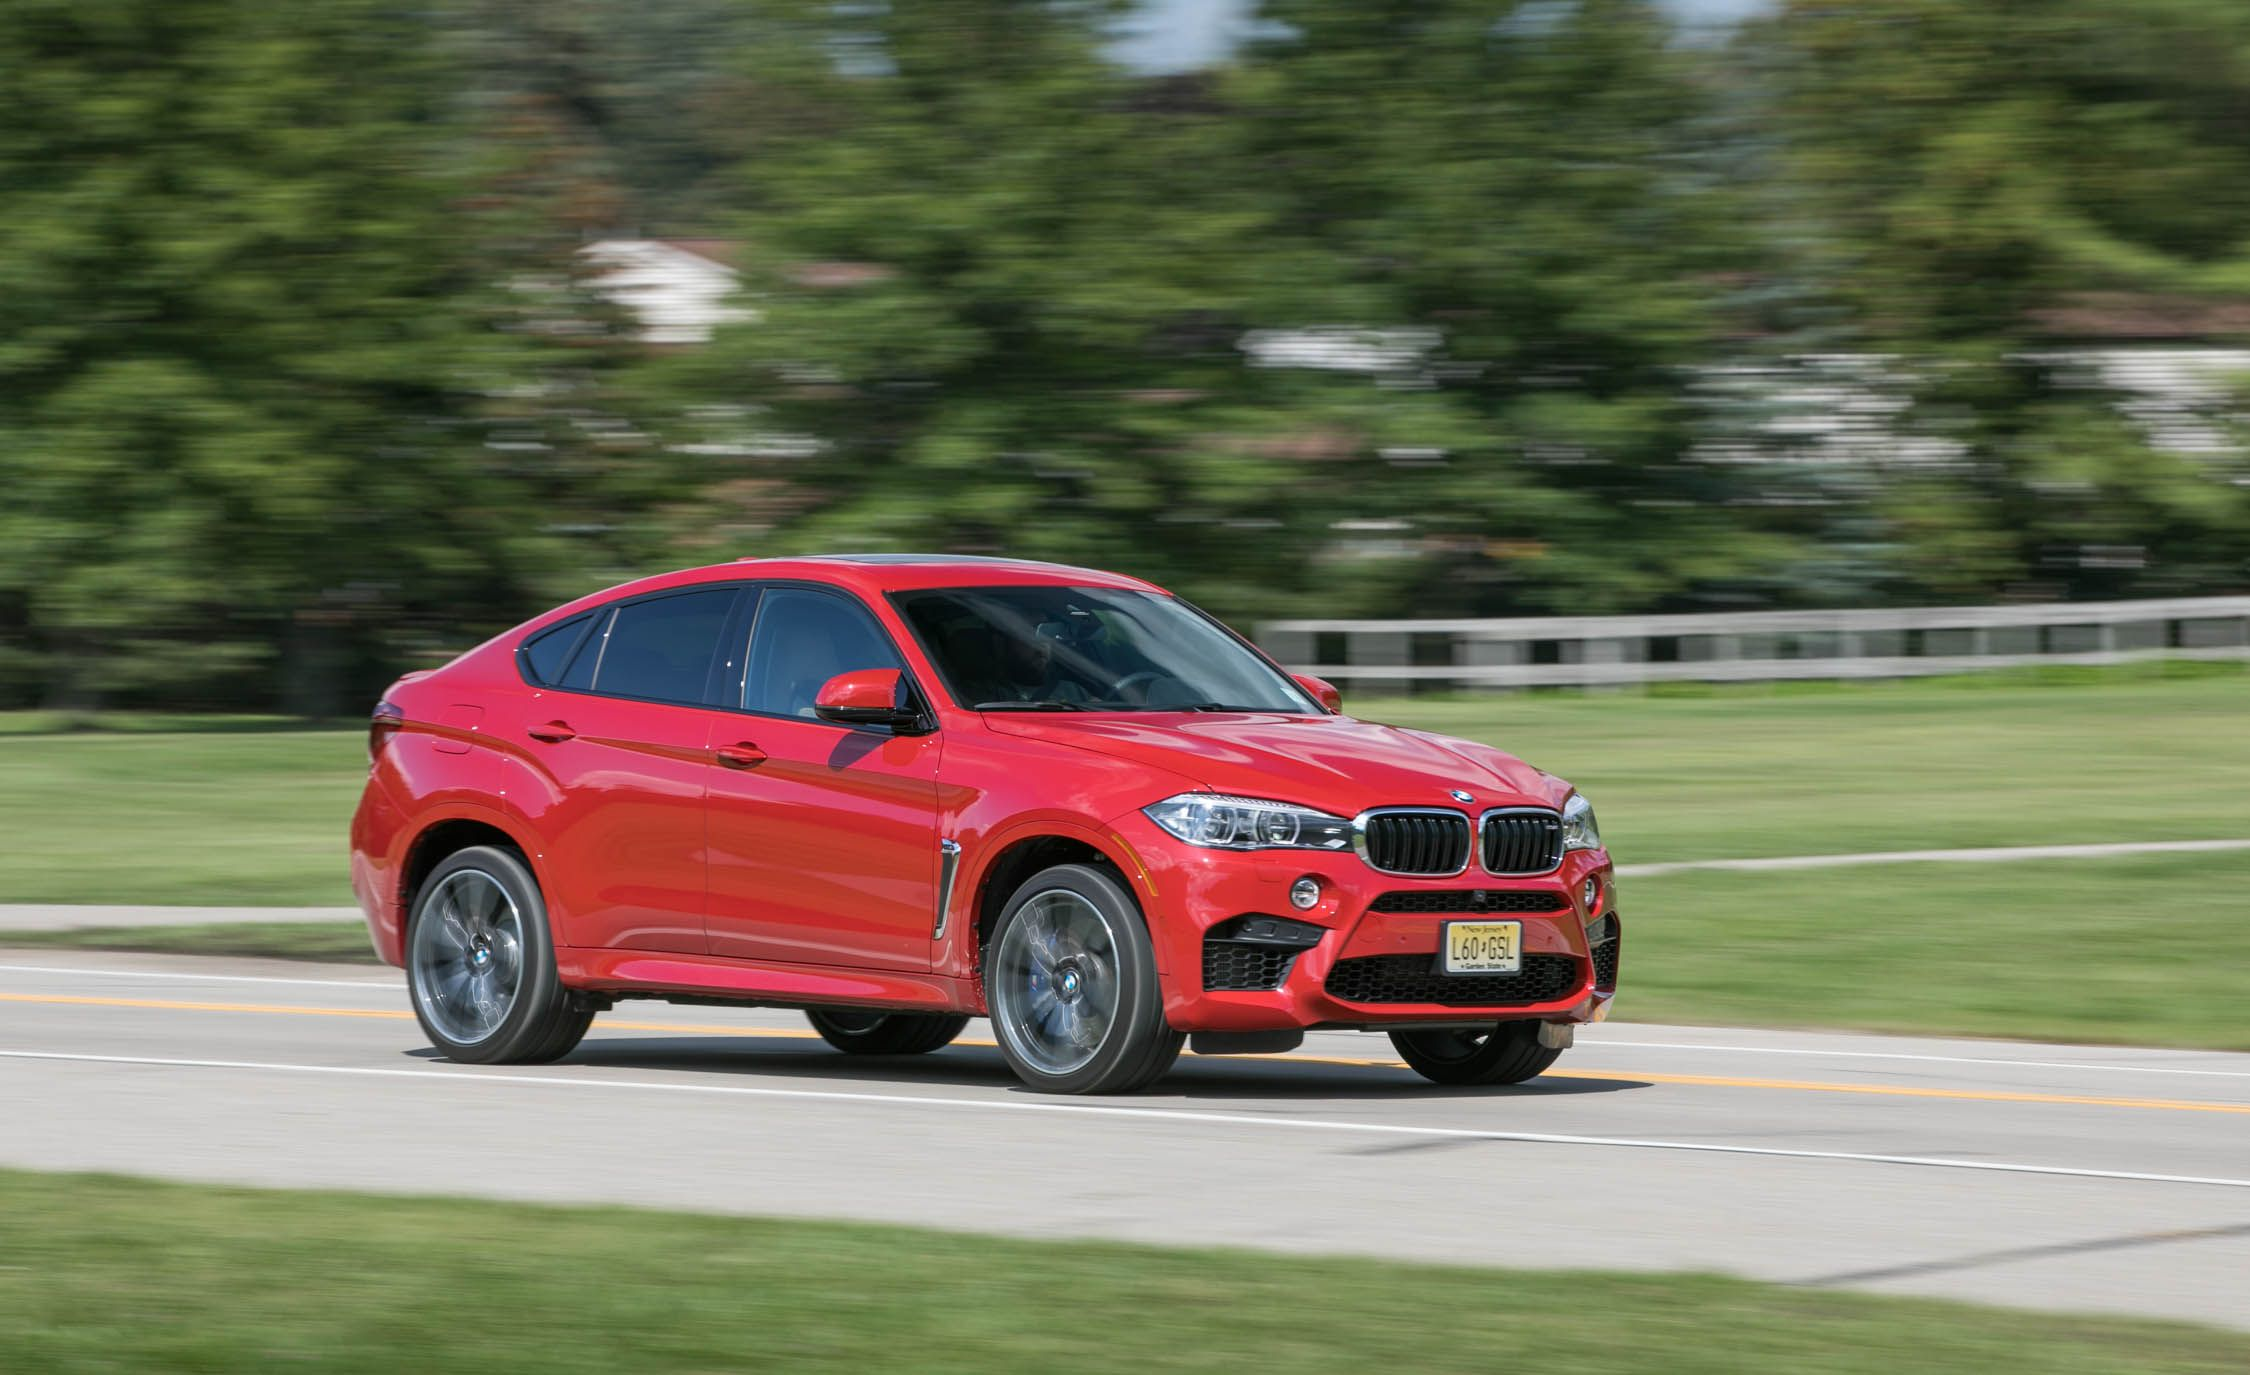 2018 Bmw X6 M Warranty And Maintenance Coverage Review Car And